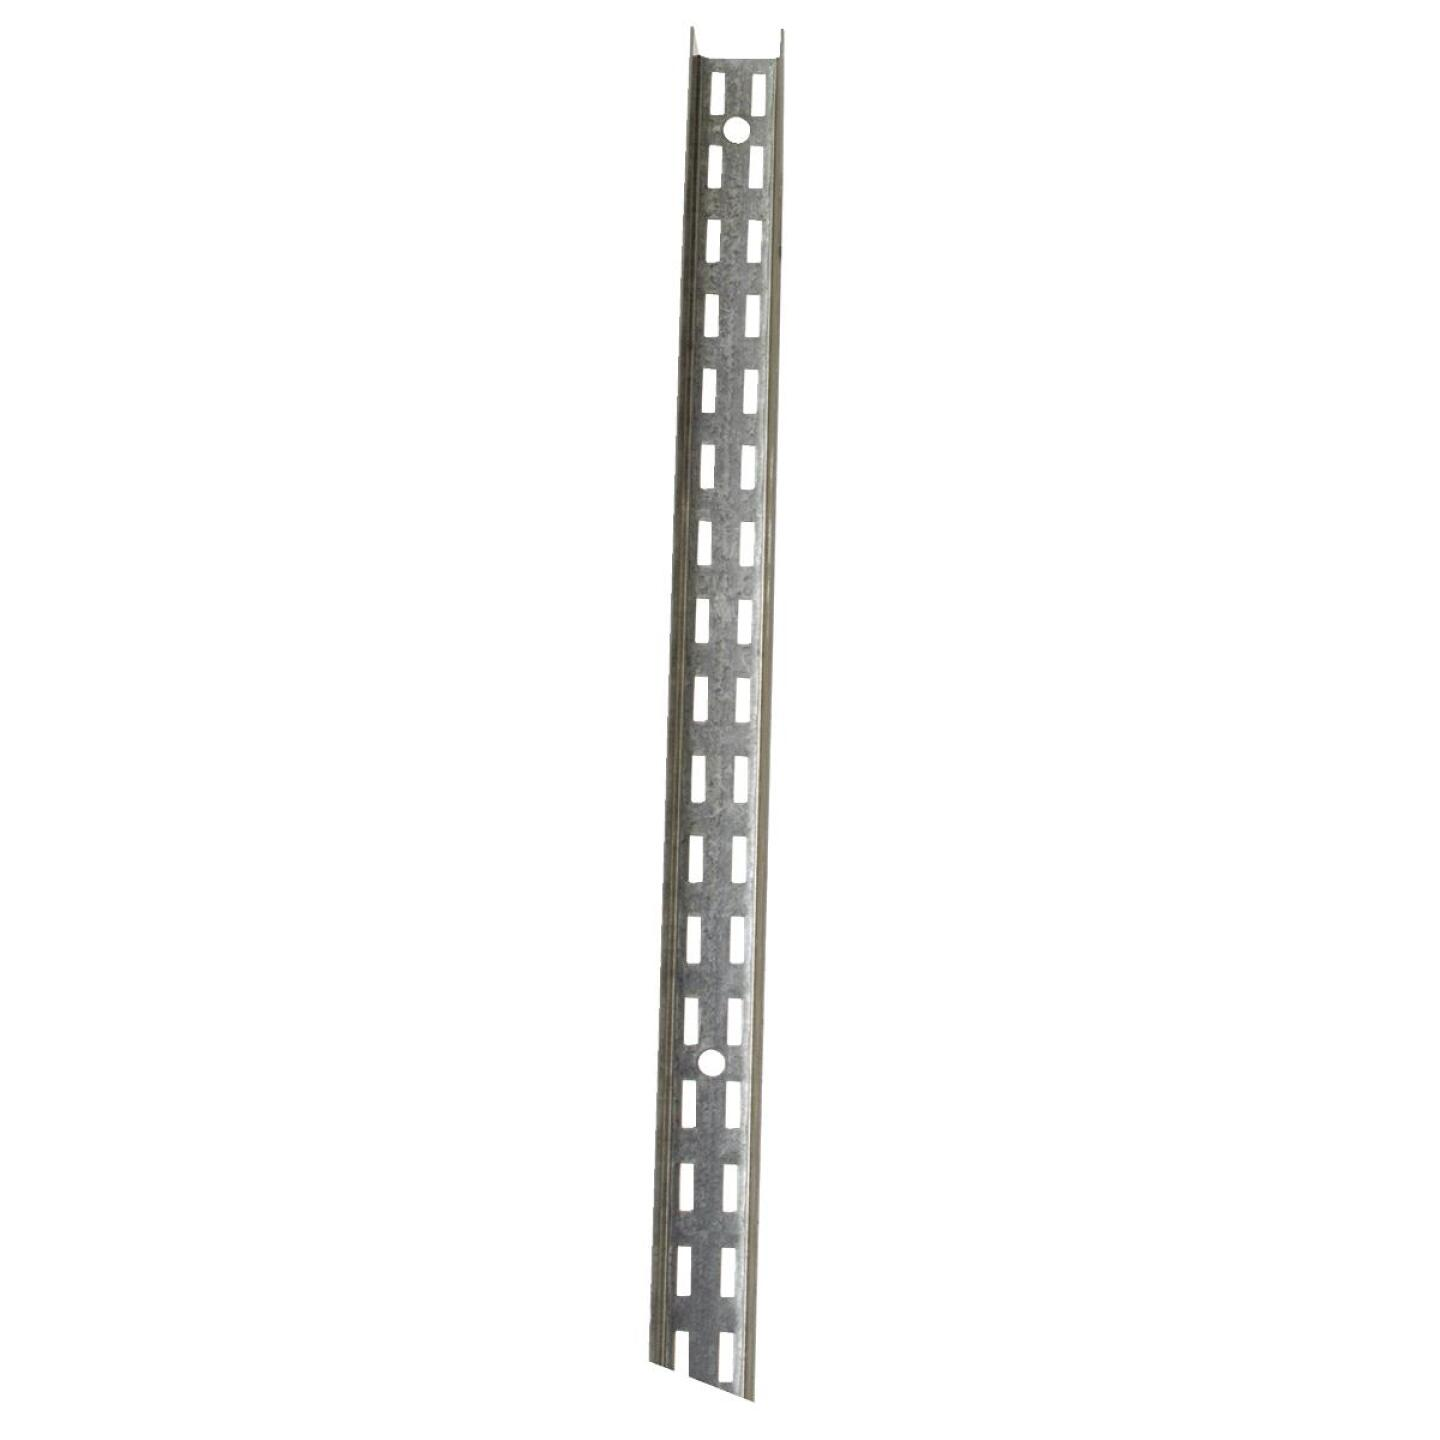 John Sterling Fast-Mount 72 In. Galvanized Steel Double-Slot Shelf Standard Image 1